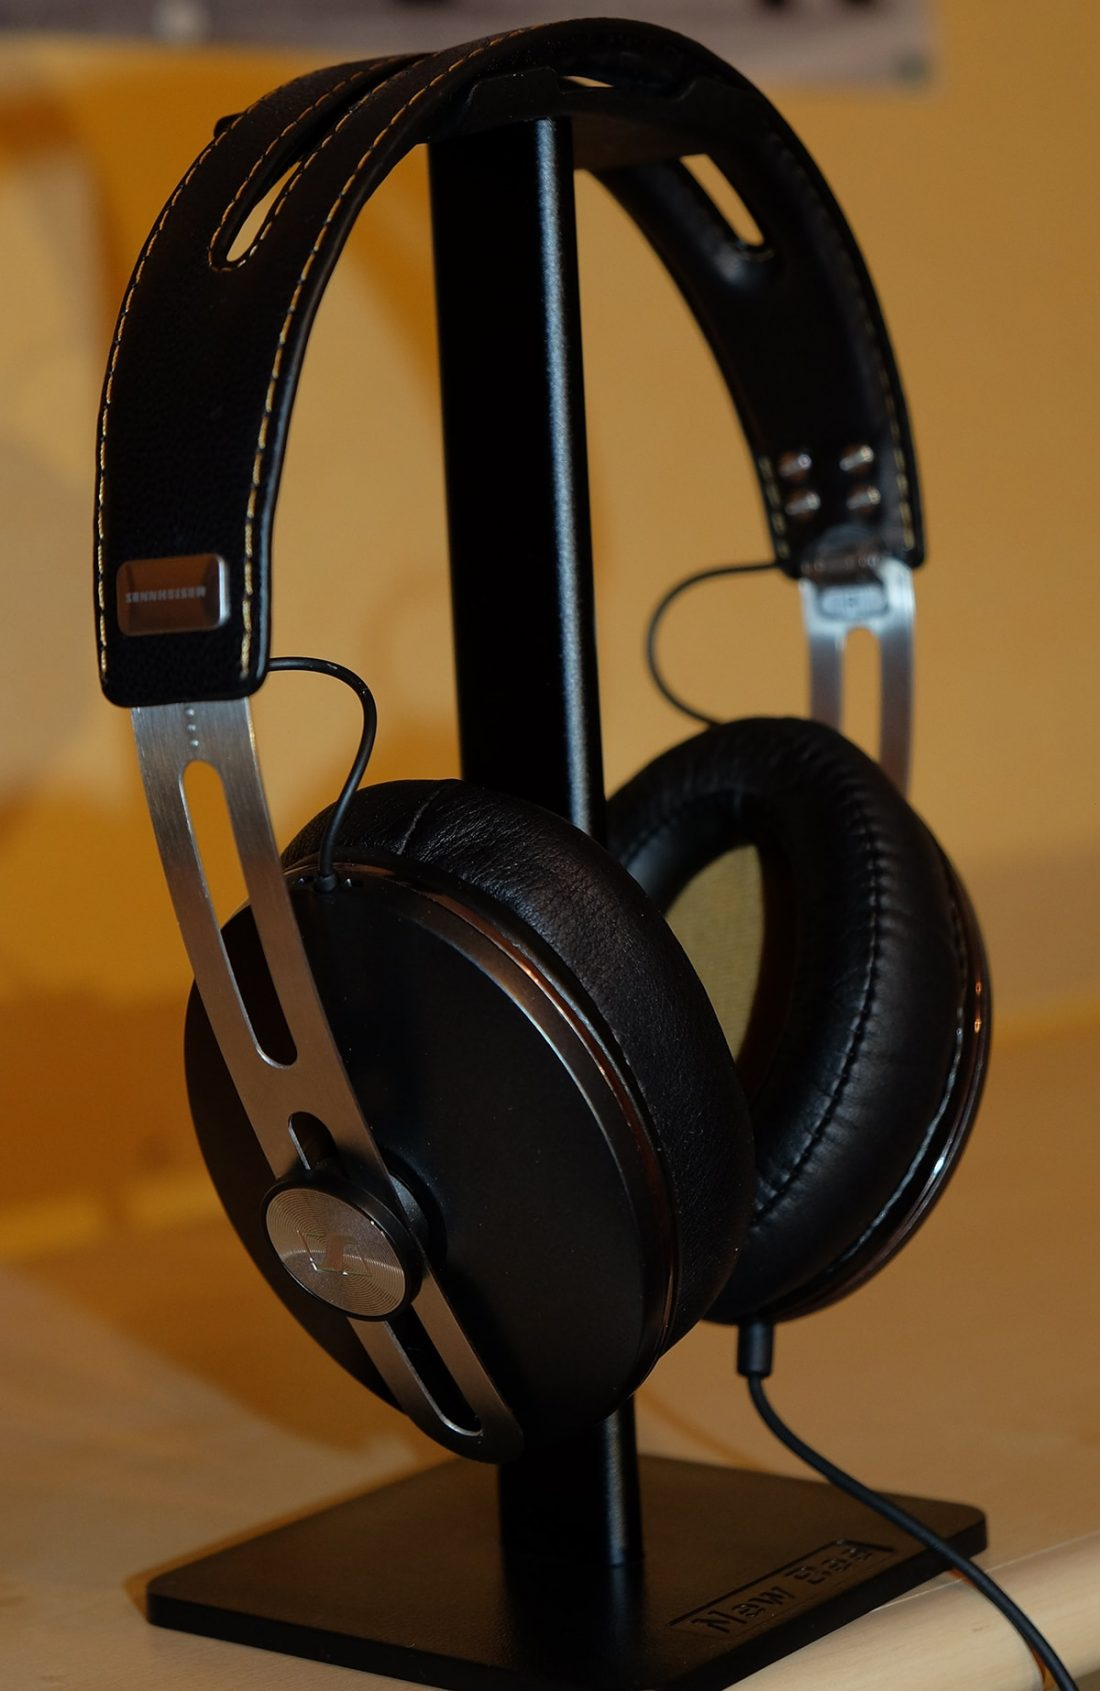 The sleek-looking Sennheiser Momentum 2